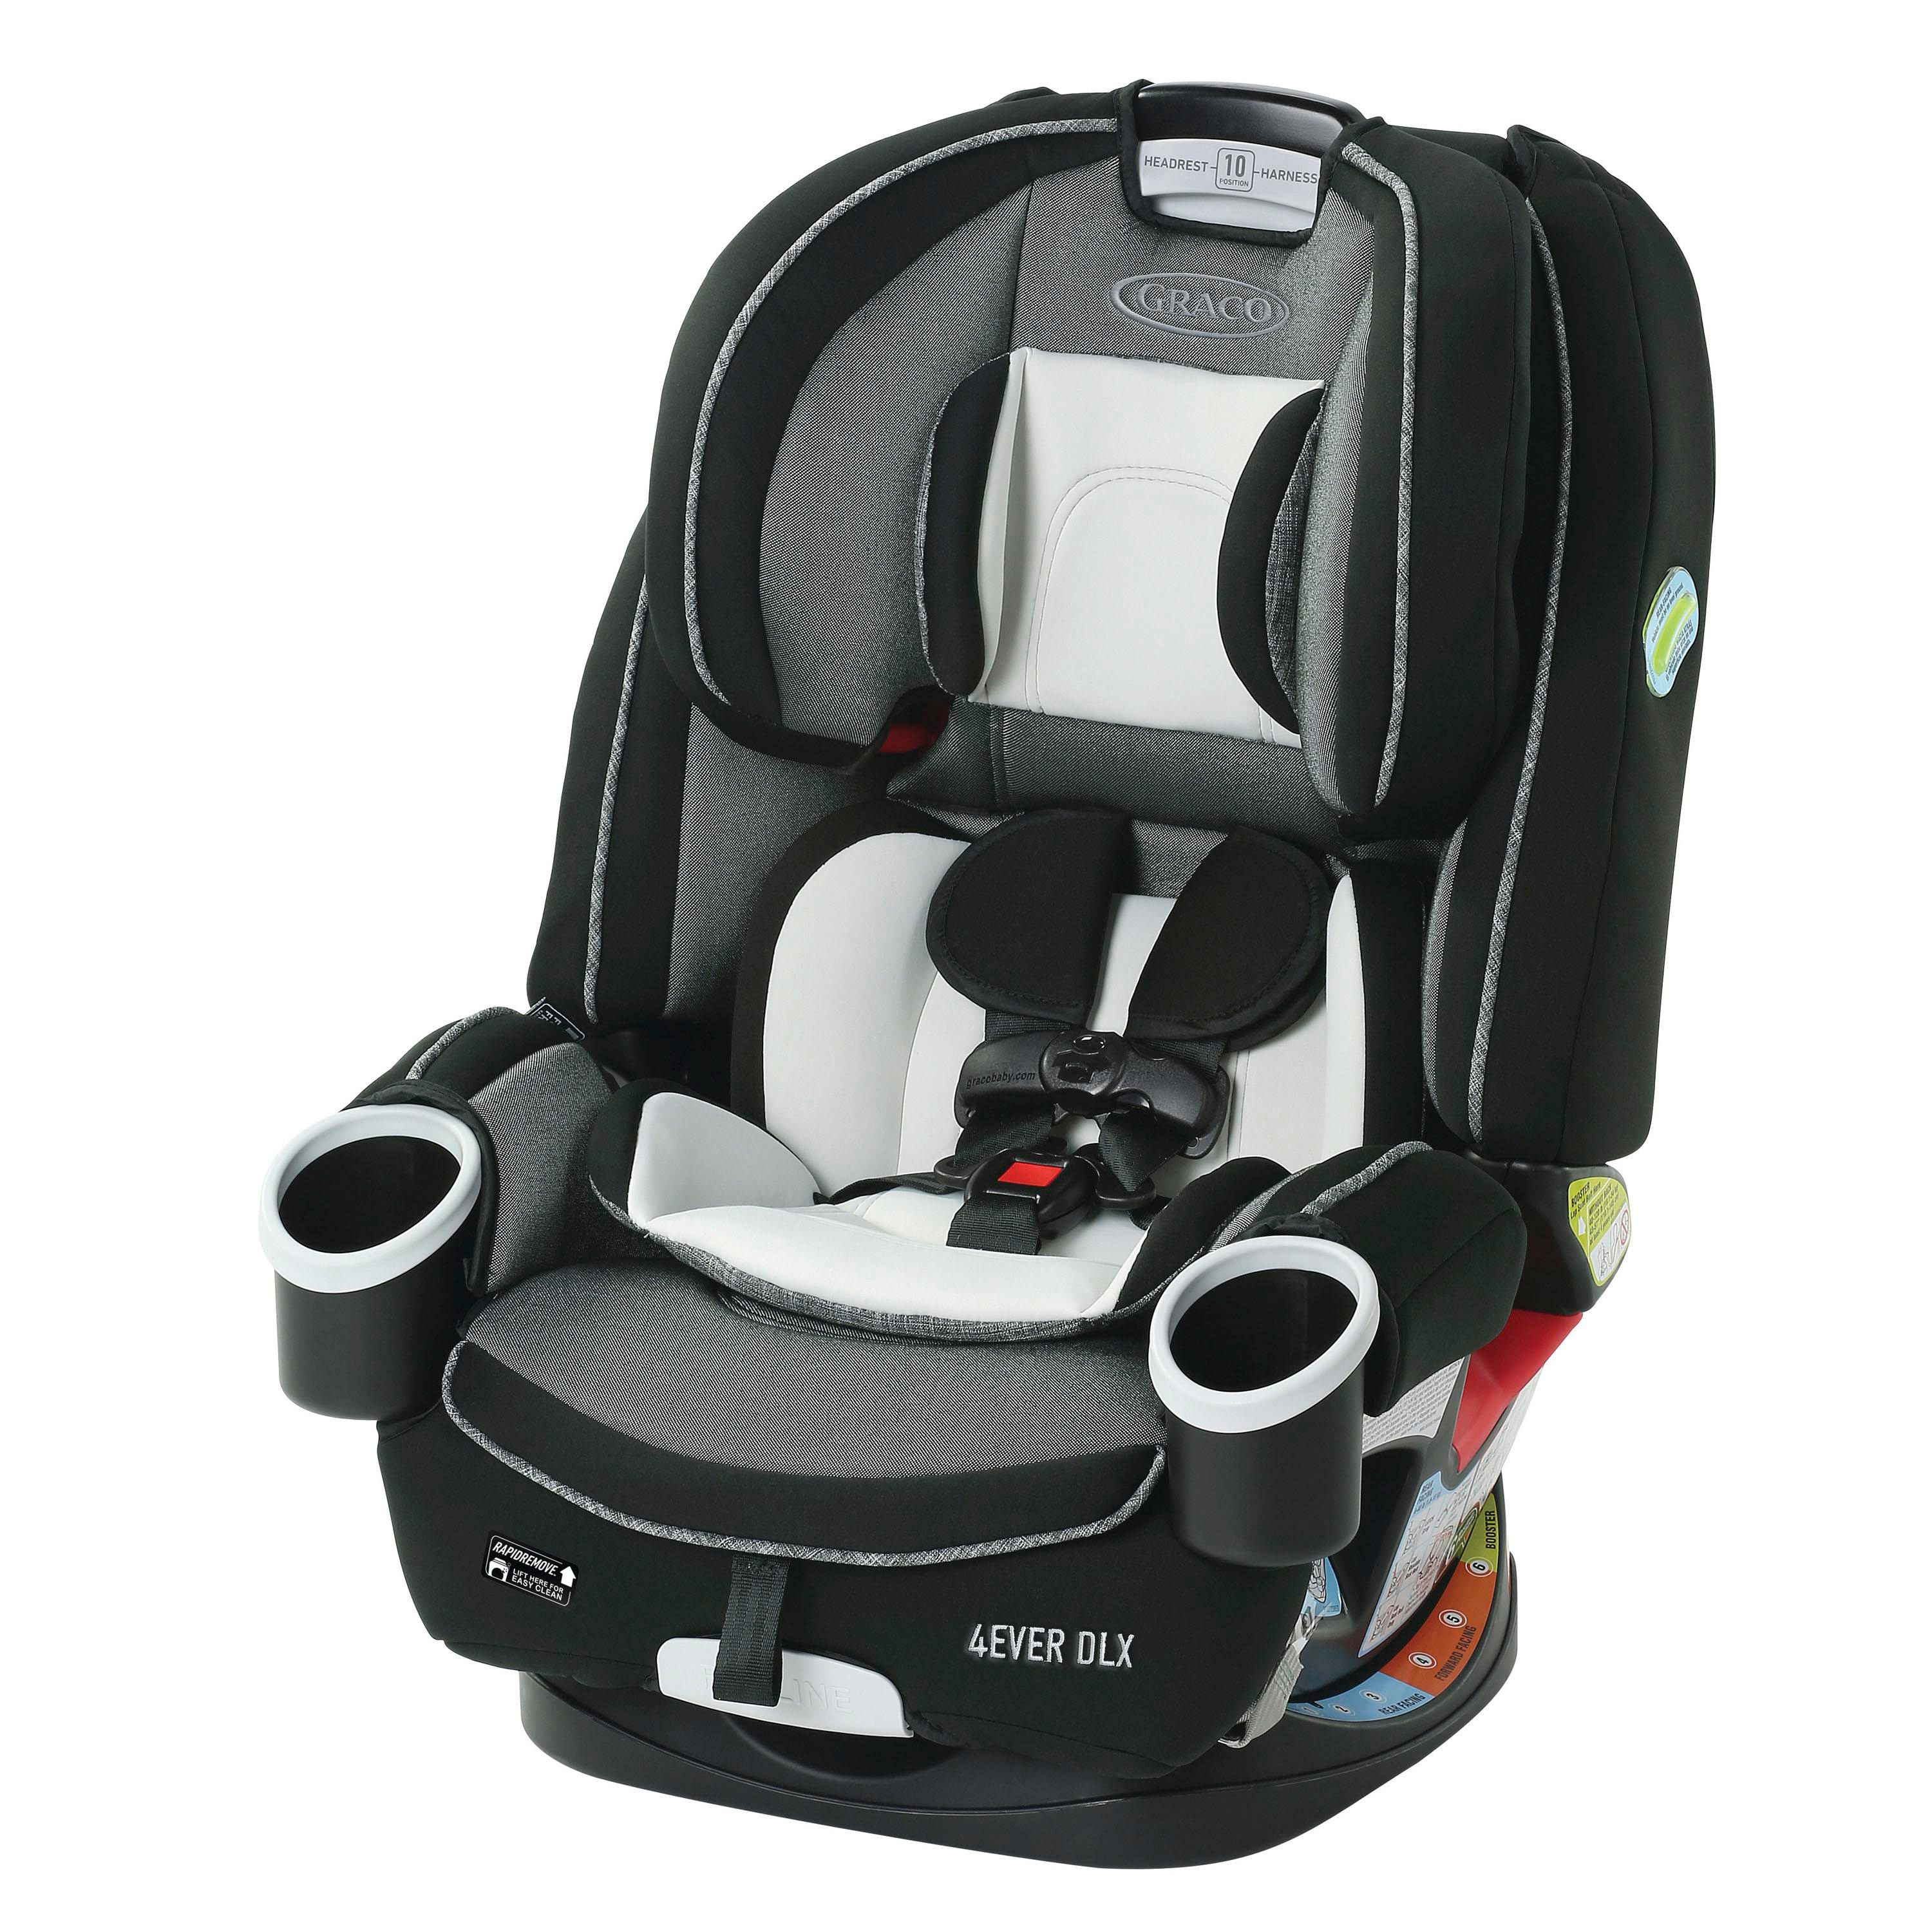 Graco 4Ever DLX 4-in-1 Convertible Car Seat, Fairmont ...